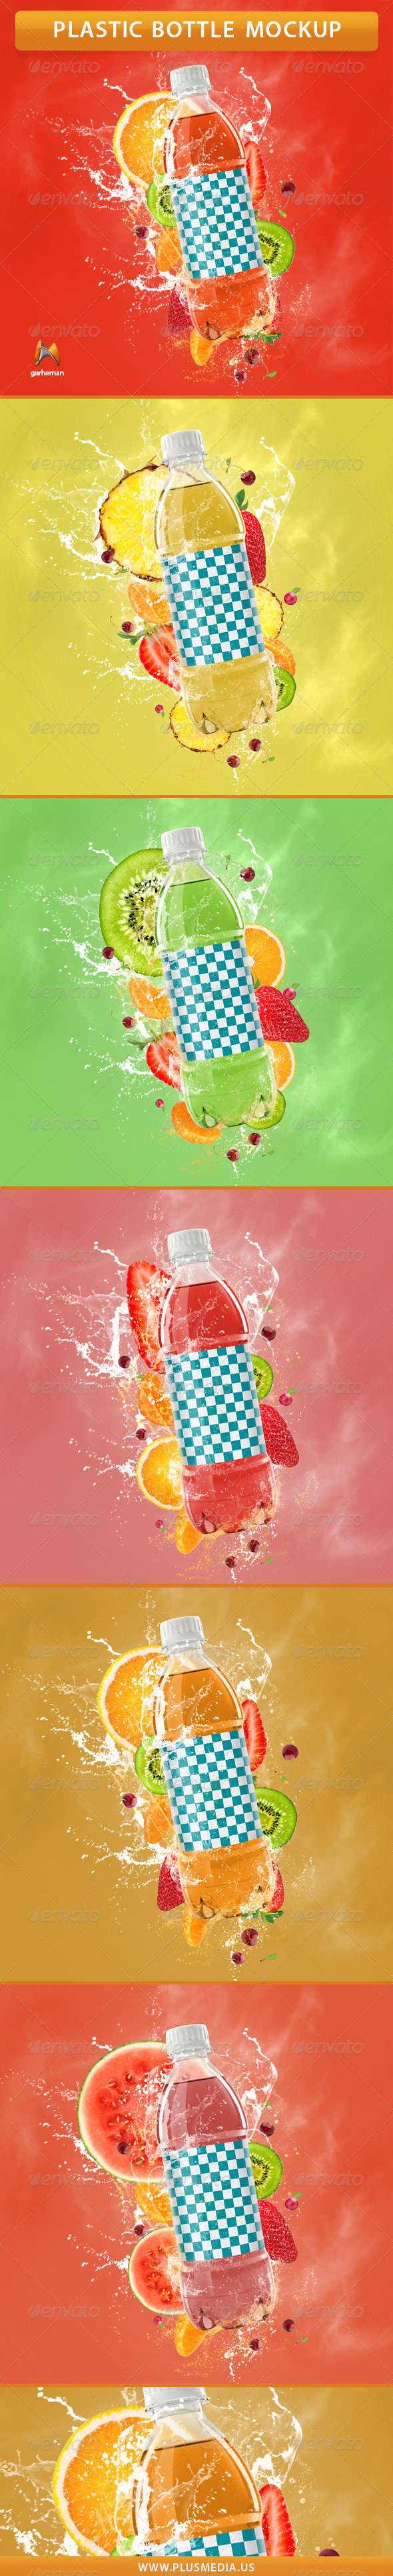 Plastic Bottle Mockup - Product Mock-Ups Graphics